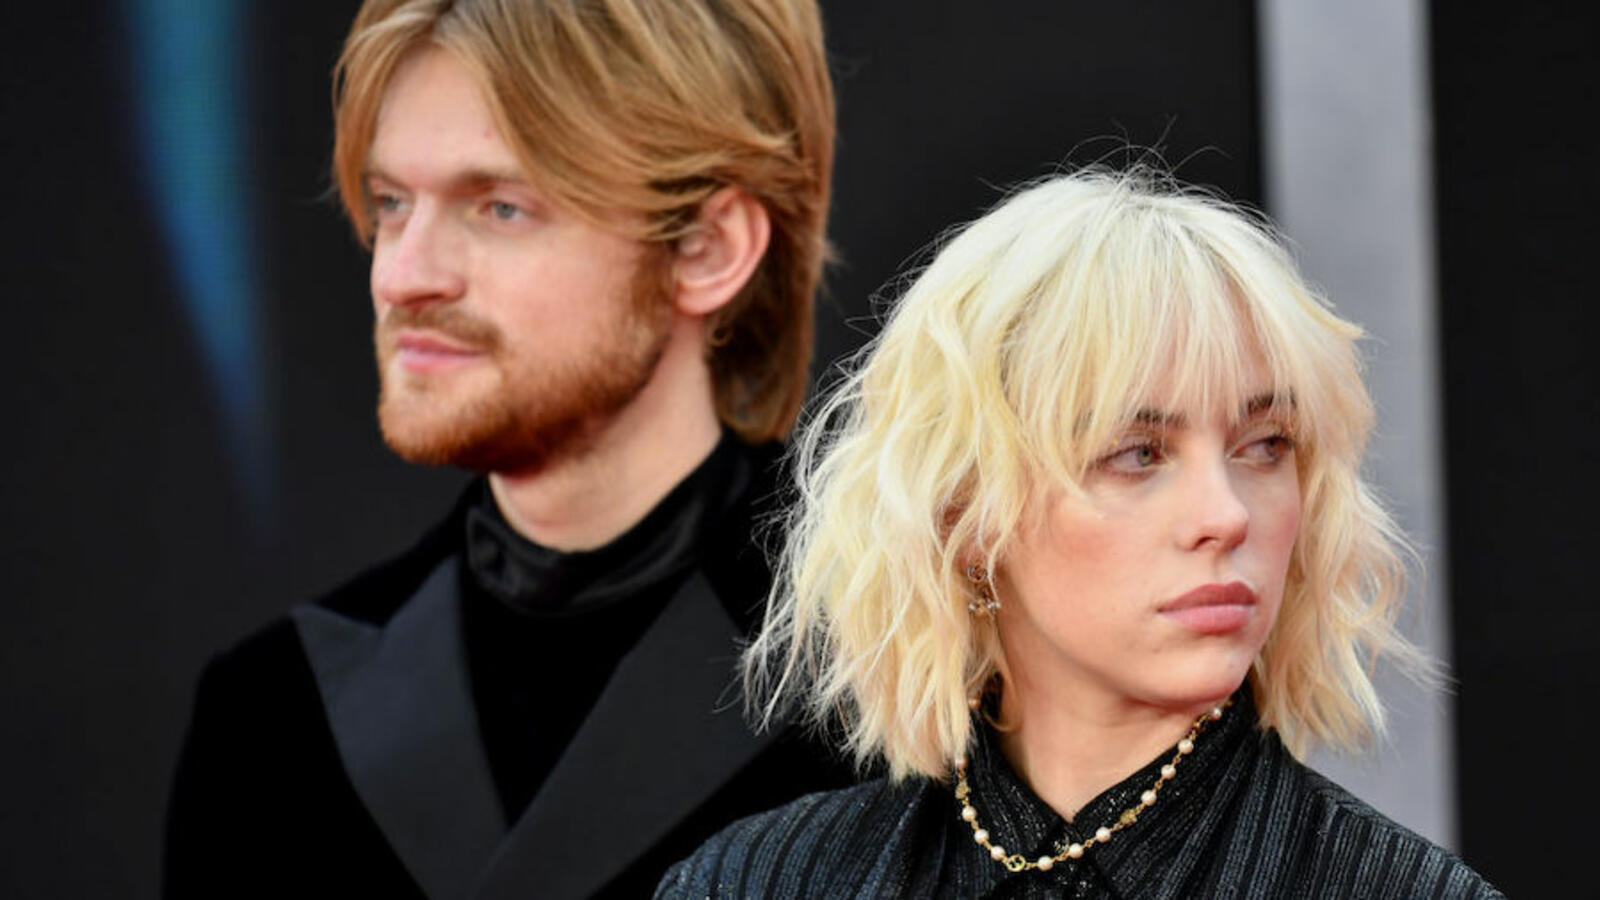 FINNEAS Reveals Why He Doesn't Want To Sound Like BIllie Eilish